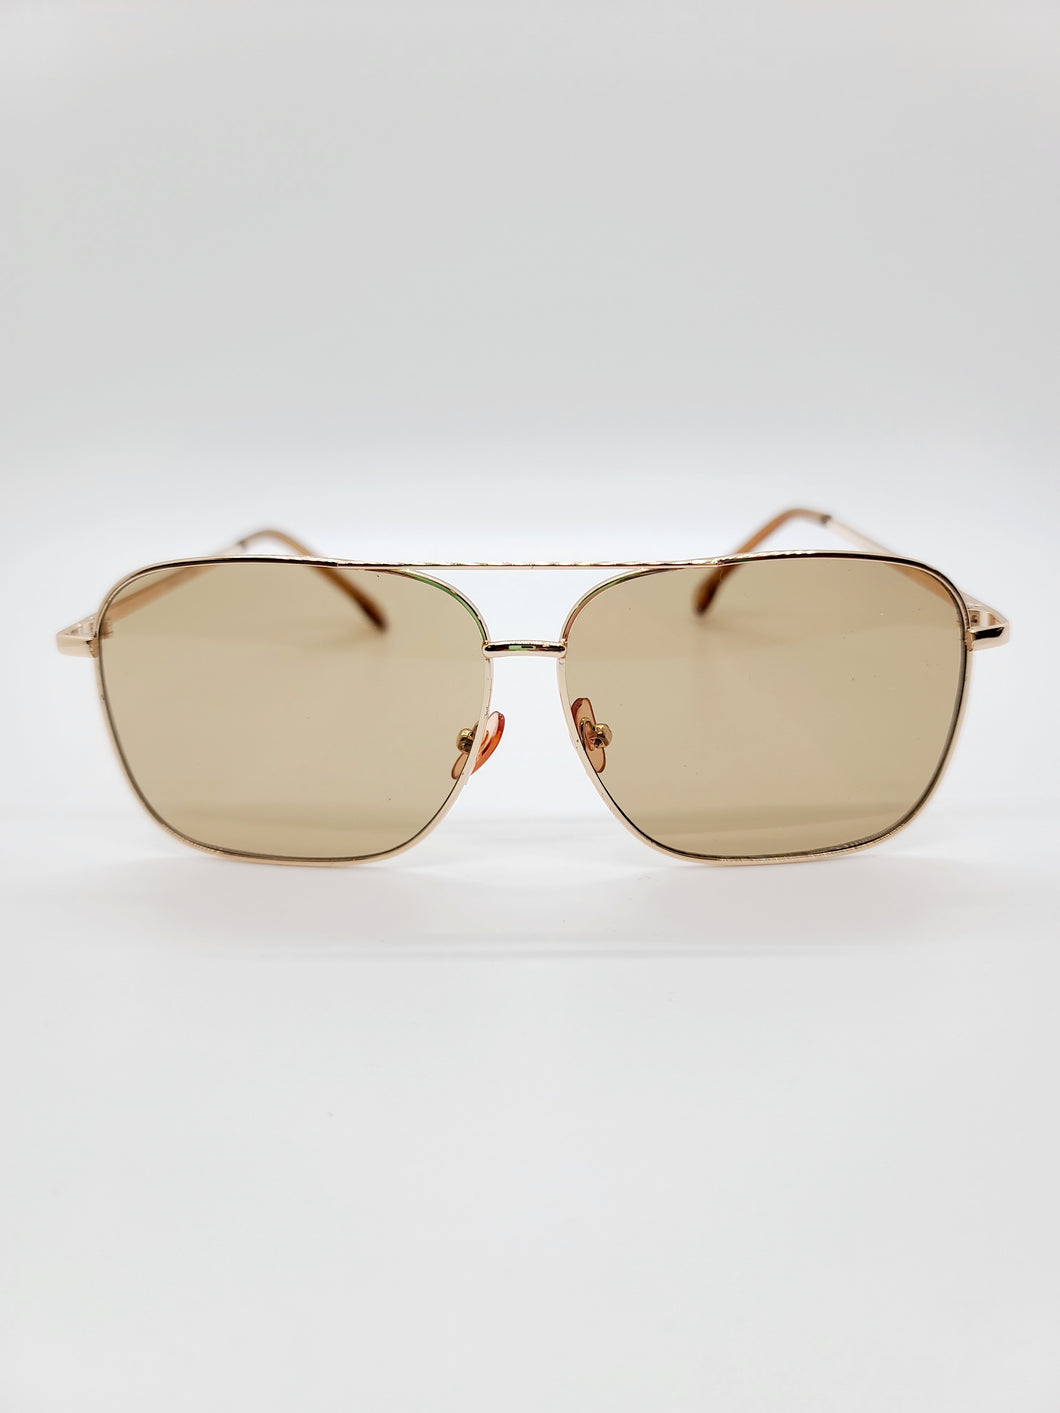 light brown square golden wire frame aviator style sunglasses